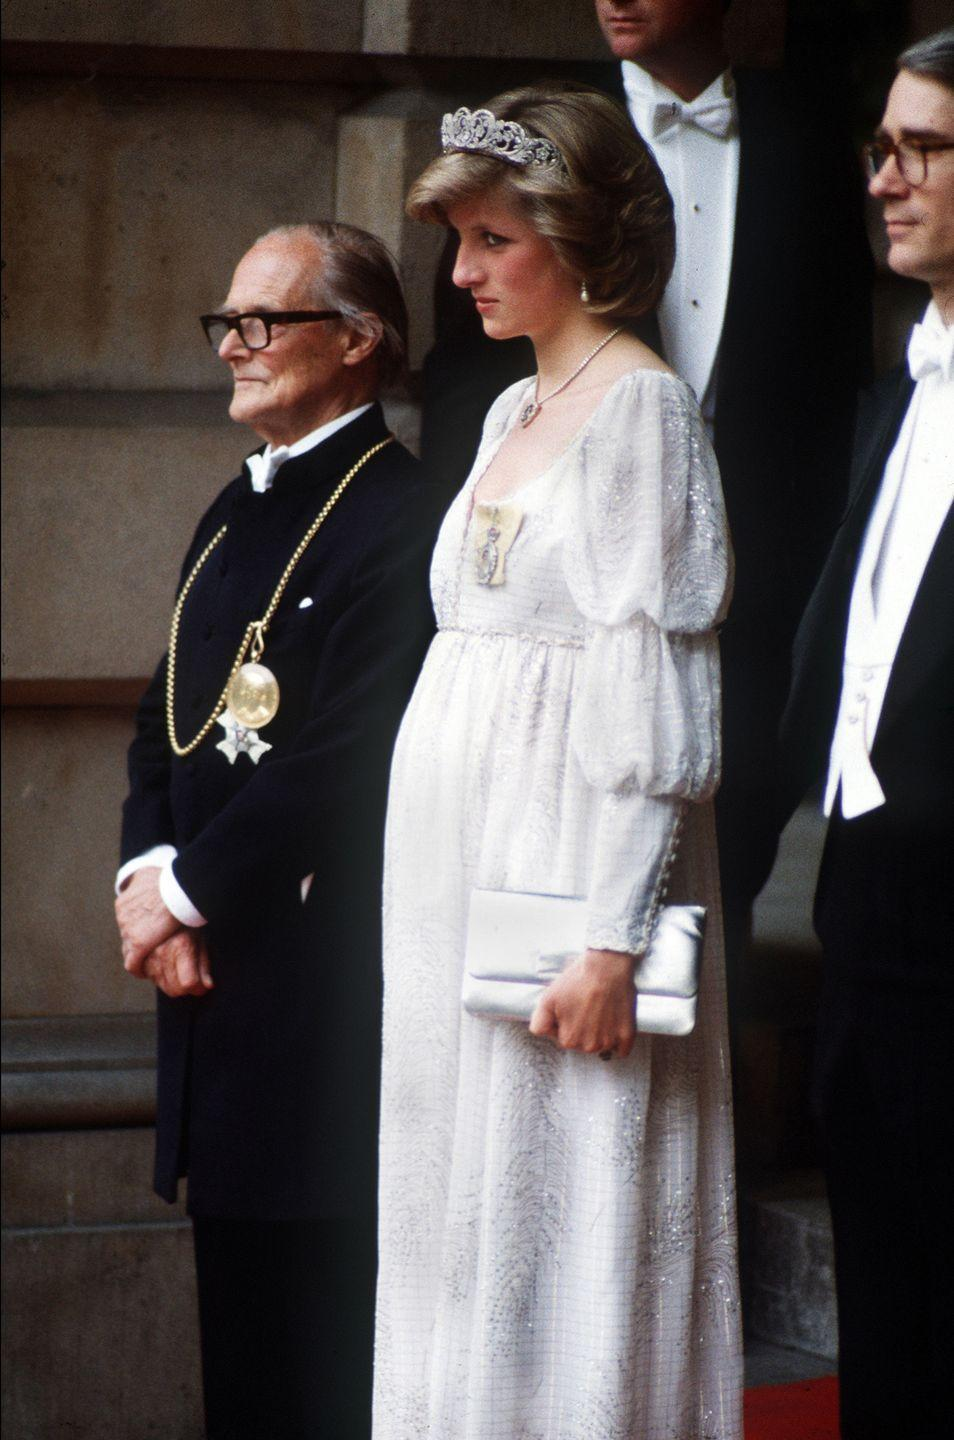 """<p>Empire waists became a favorite of Princess Diana's during her early stages of pregnancy. Though the style dates back all the way to the <a href=""""https://www.elle.com/fashion/personal-style/g28423/maternity-style-evolution/?slide=7"""" rel=""""nofollow noopener"""" target=""""_blank"""" data-ylk=""""slk:Baroque period"""" class=""""link rapid-noclick-resp"""">Baroque period</a> in the 1500's, it's a timeless choice for an ever-growing bump. </p>"""